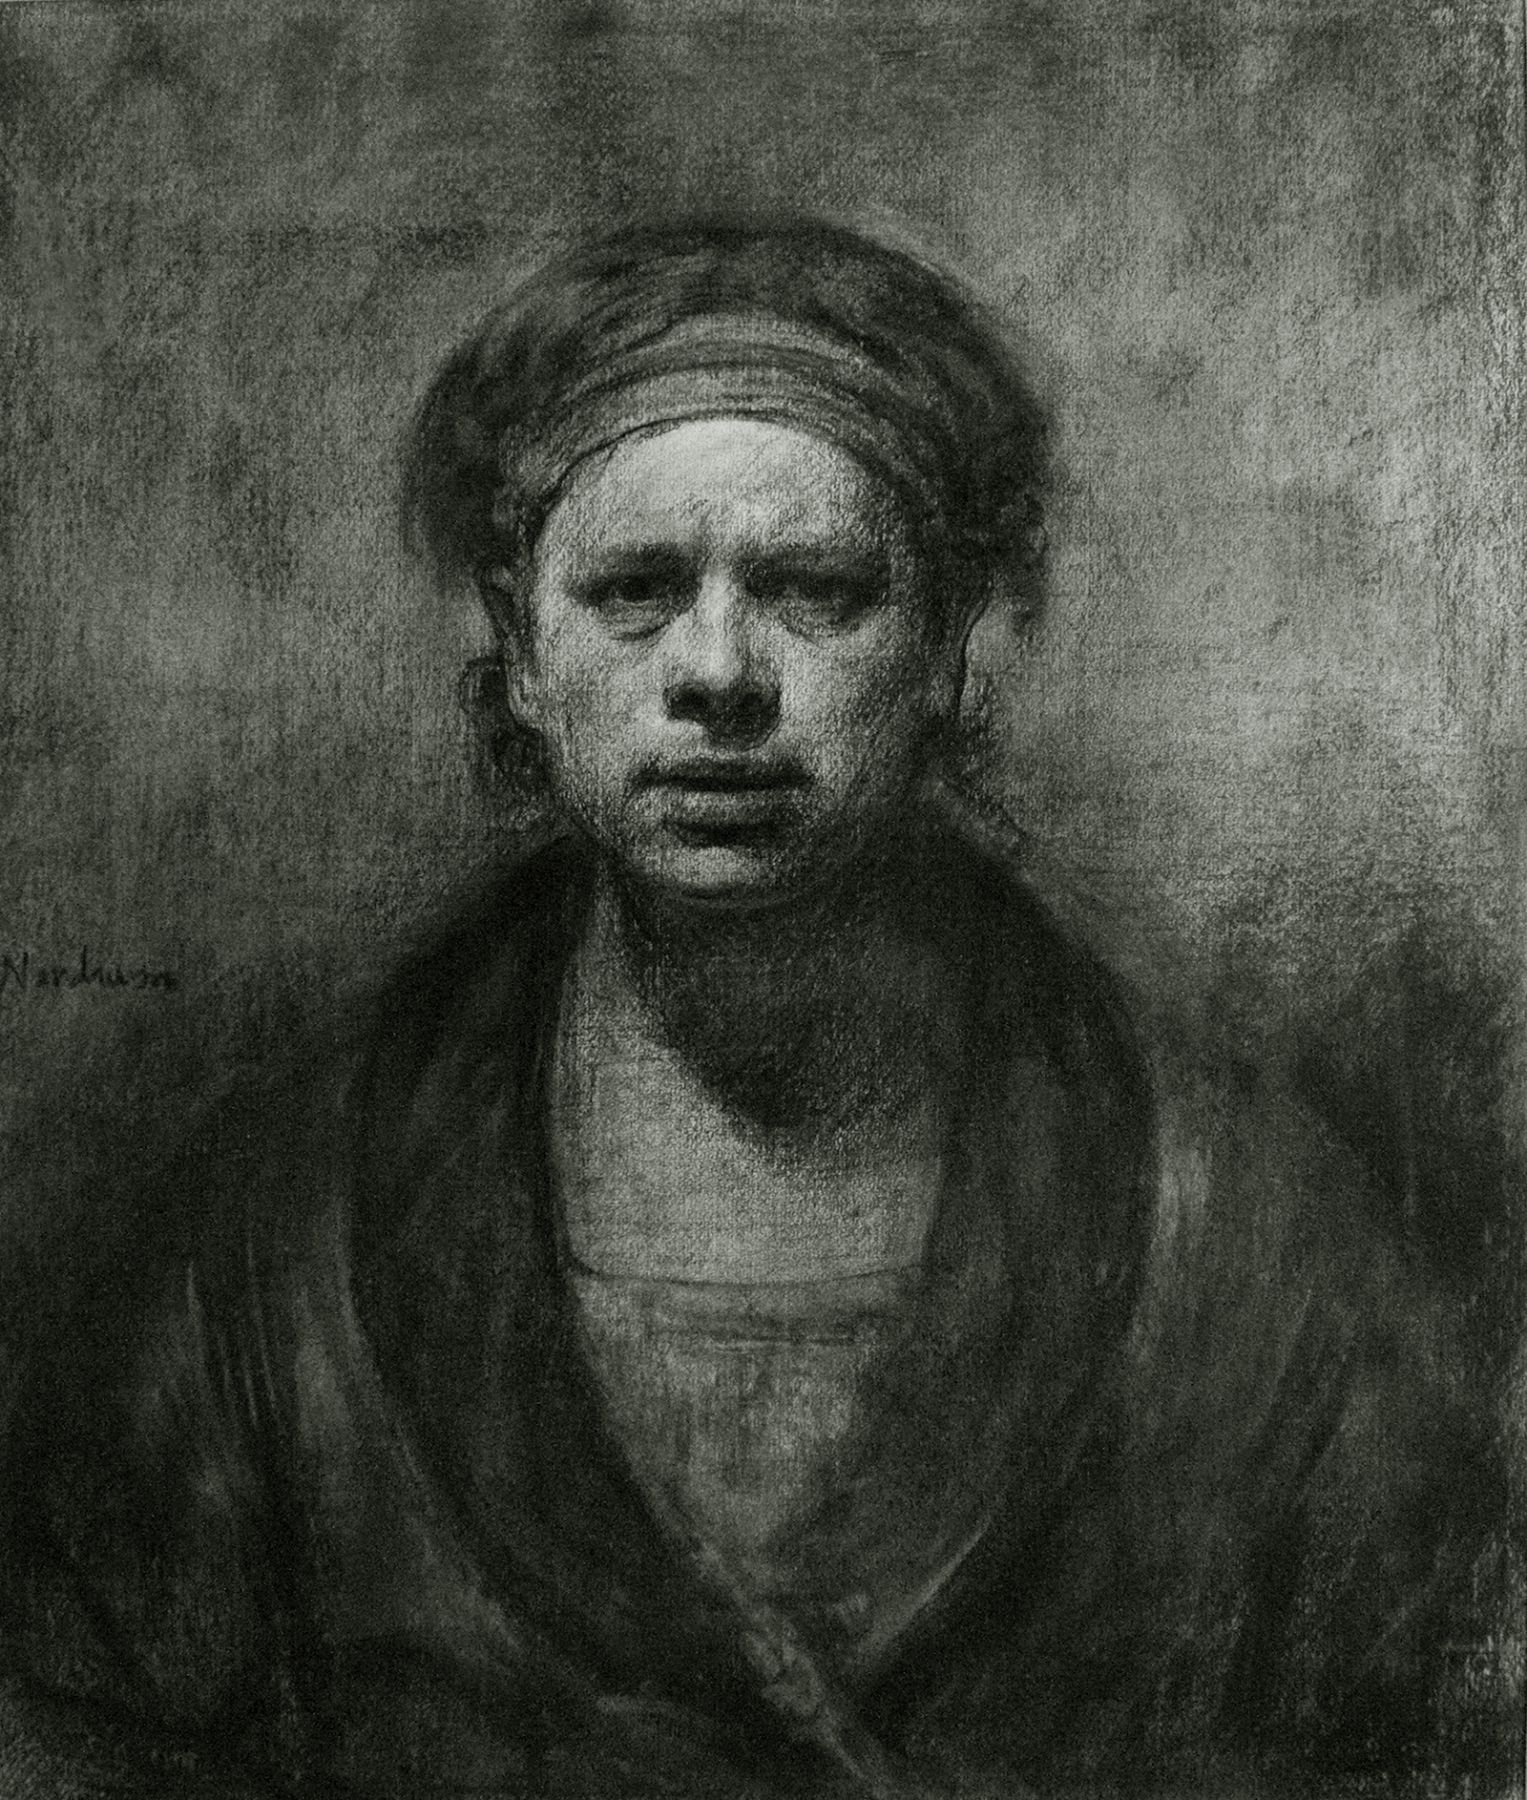 Odd Nerdrum, Self-Portrait, 1983, charcoal on paper, 31 x 26 inches